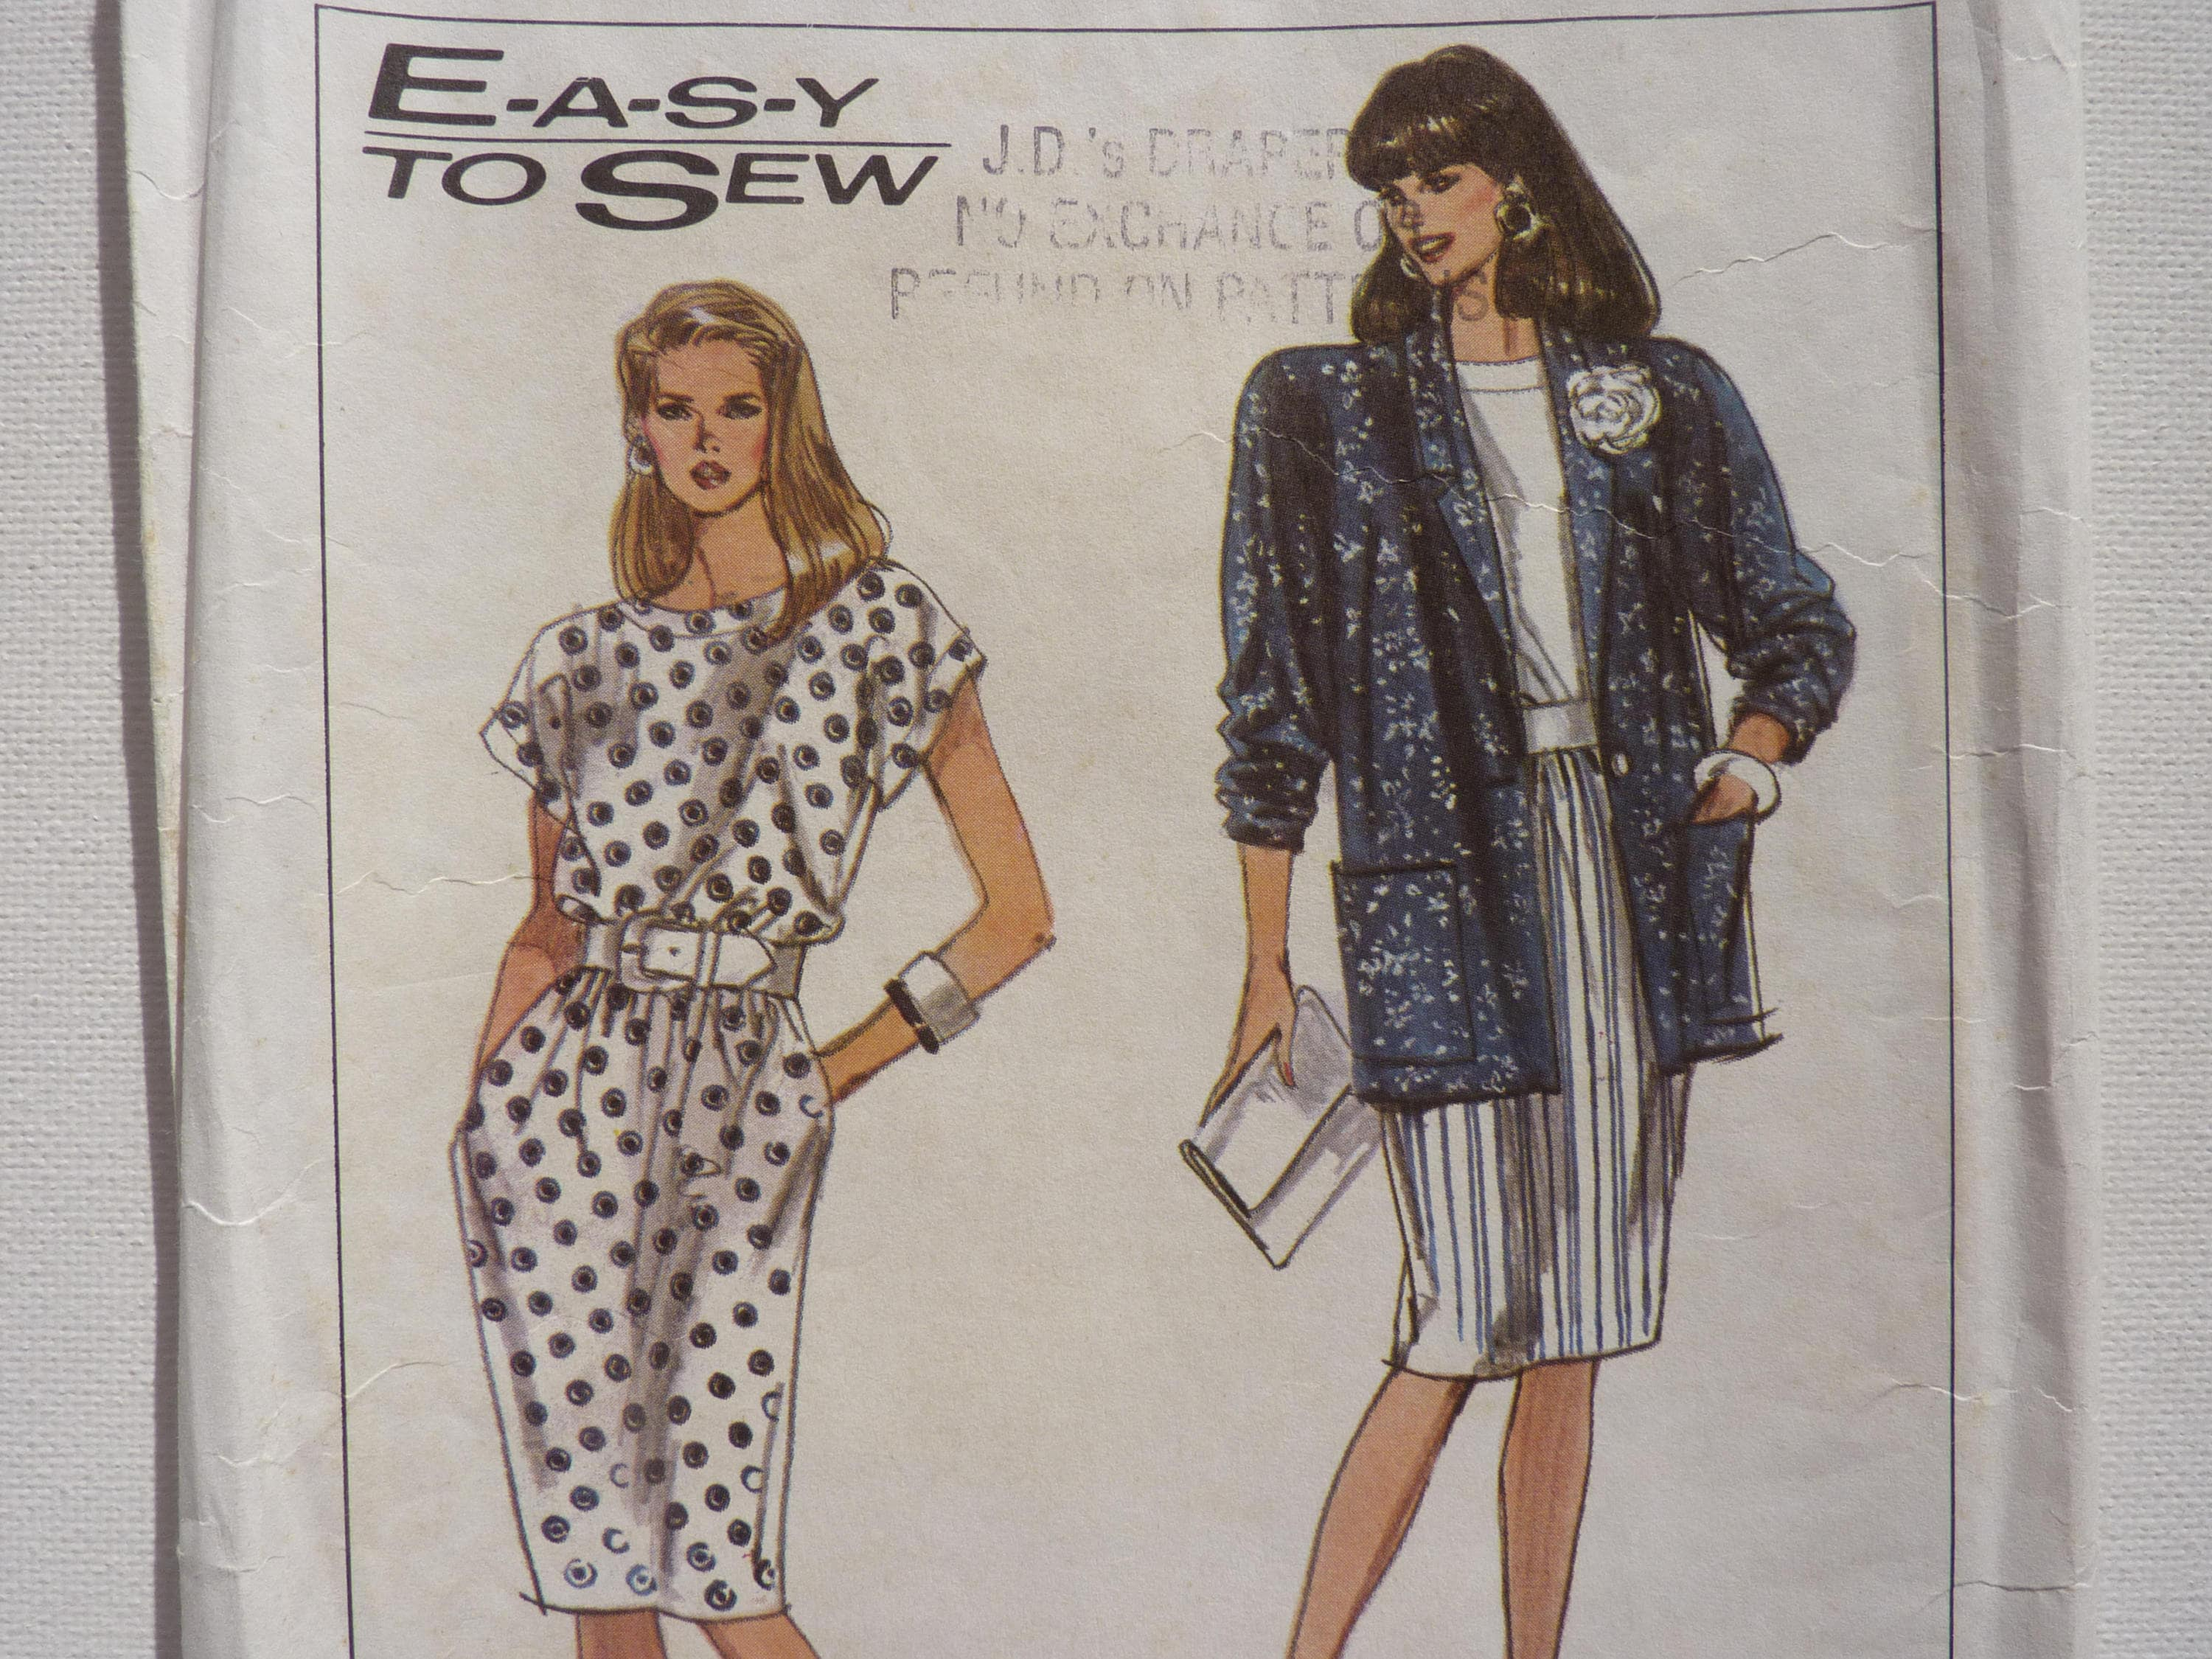 Simplicity Sewing Pattern 9045 La s Dress and Unlined